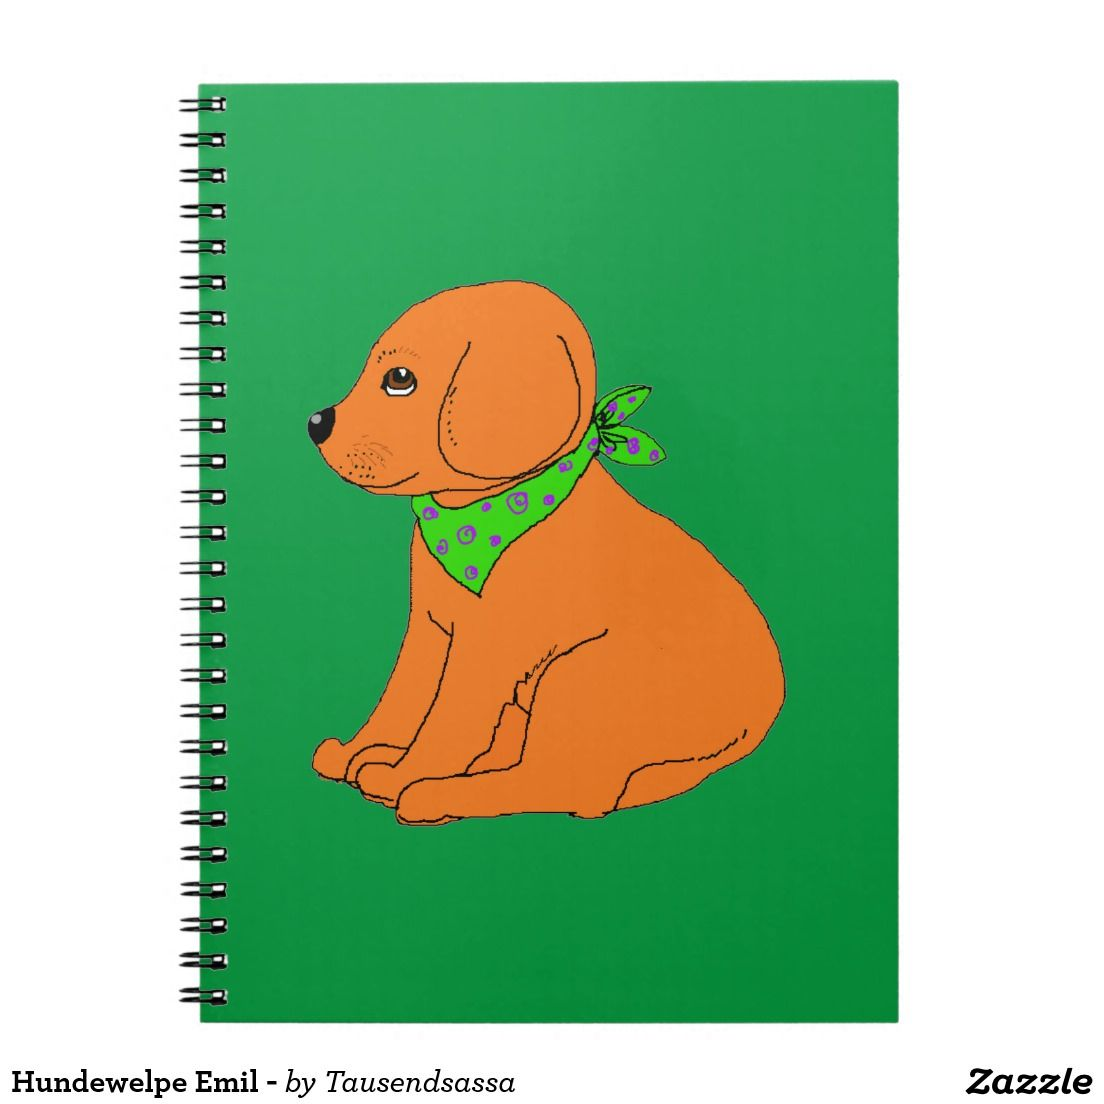 Hundewelpe Emil - Spiral Notizbuch | Products with dog - Produkte ...